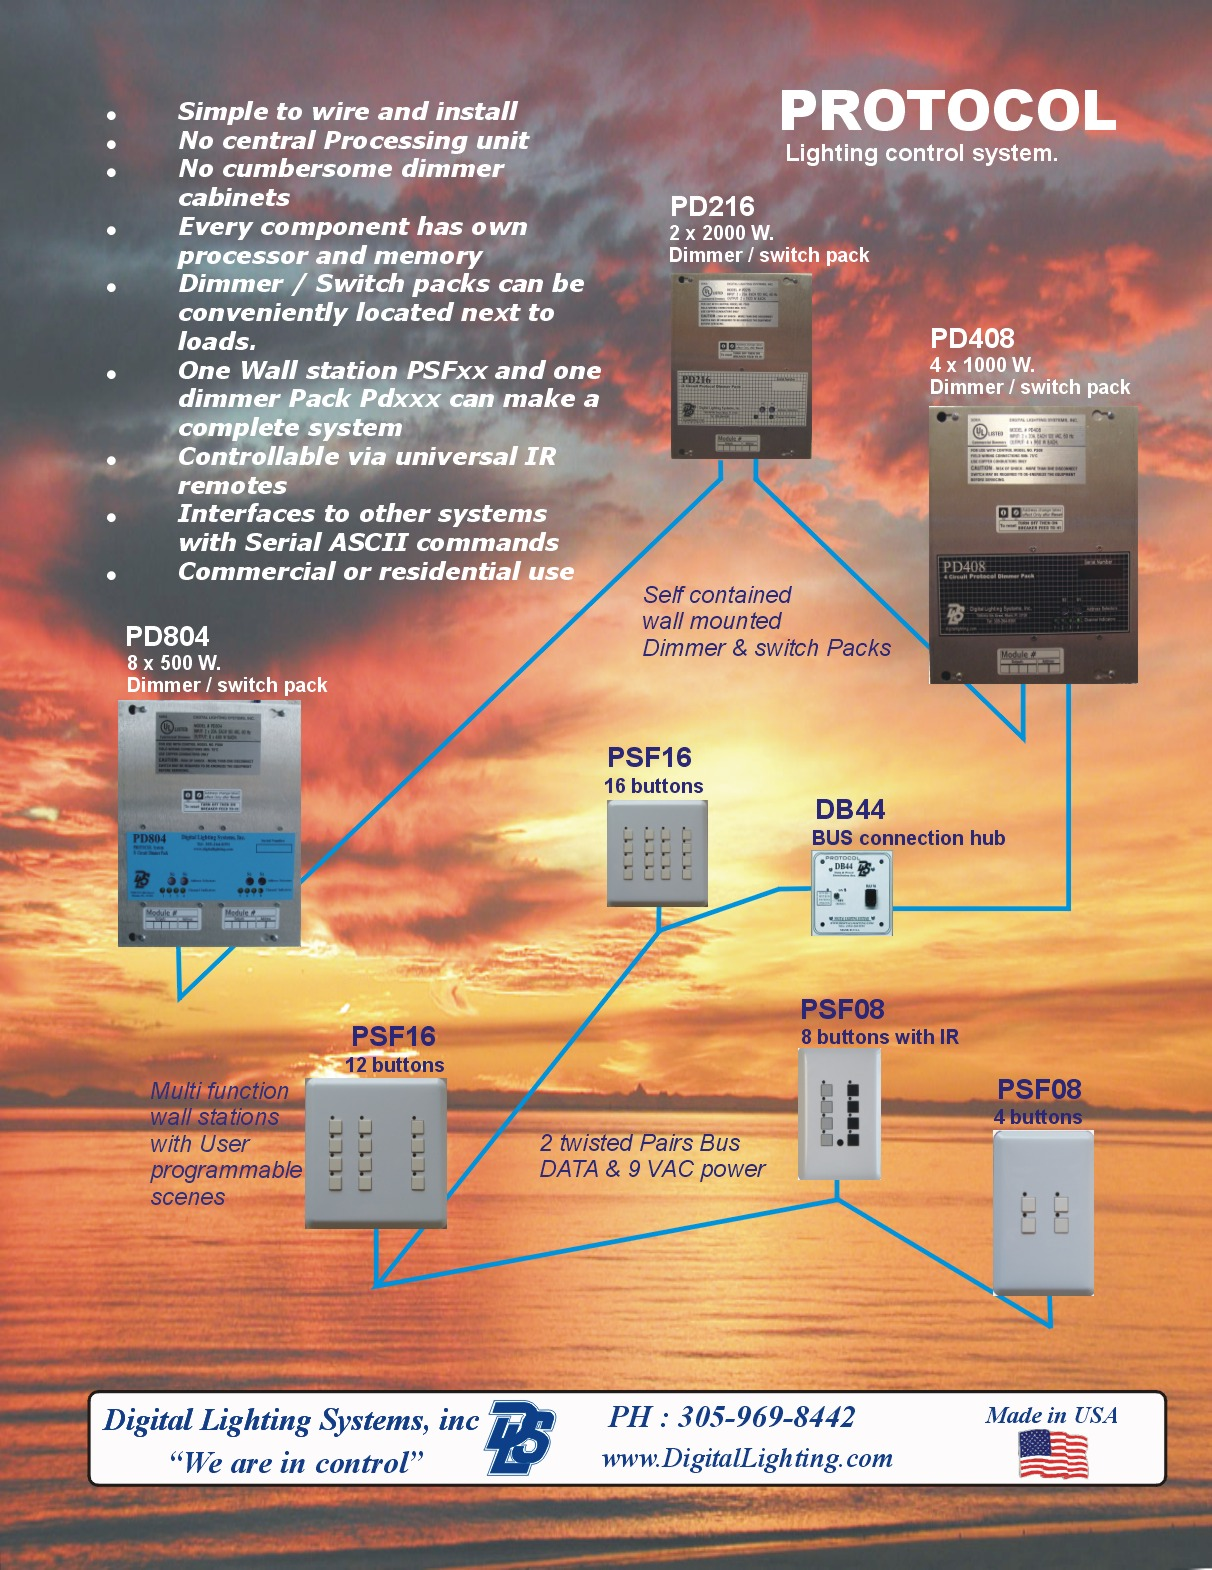 Digital Lighting Systems - Architectural Lighting Controllers & Dimmers